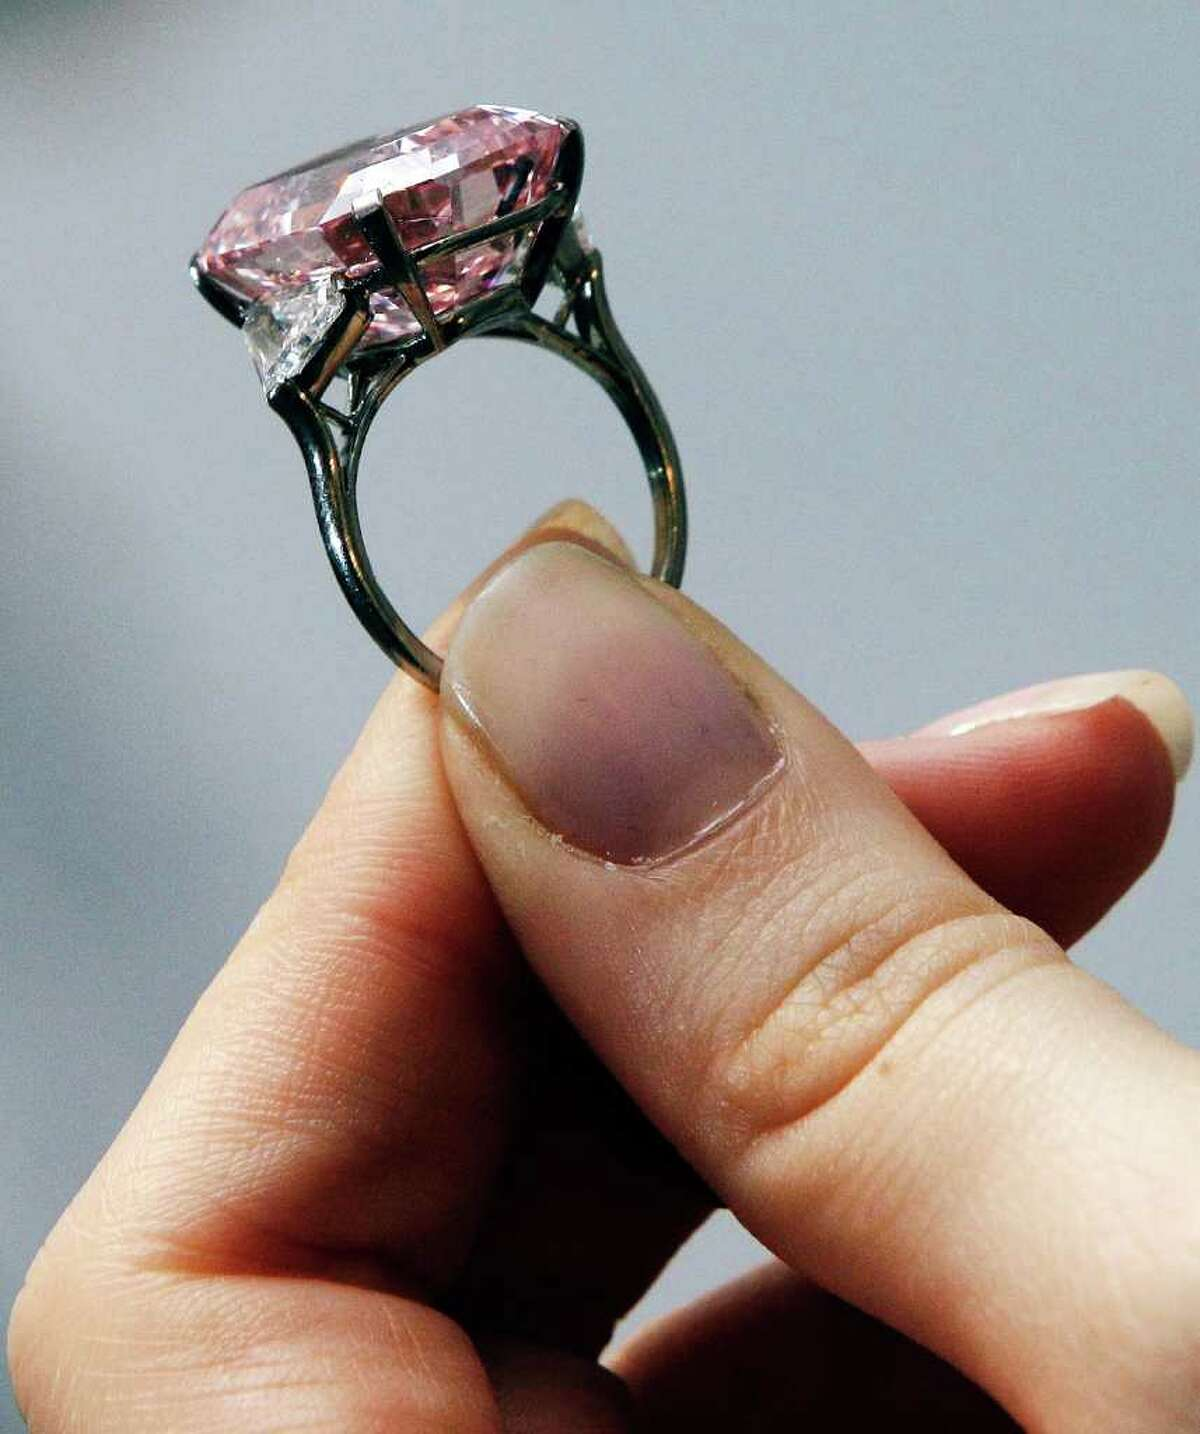 LONDON, ENGLAND - OCTOBER 25: A 24.78 Carat Fancy Intense Pink Diamond, estimated to be worth USD27-38 million is modelled by Sotheby's Jewellery employee Jessica Wyndham at Sotheby's auction house on October 25, 2010 in London, England. The diamond is currenty part of a display but will be auctioned on November 16th at Sotheby's in Geneva. (Photo by Matthew Lloyd/Getty Images)